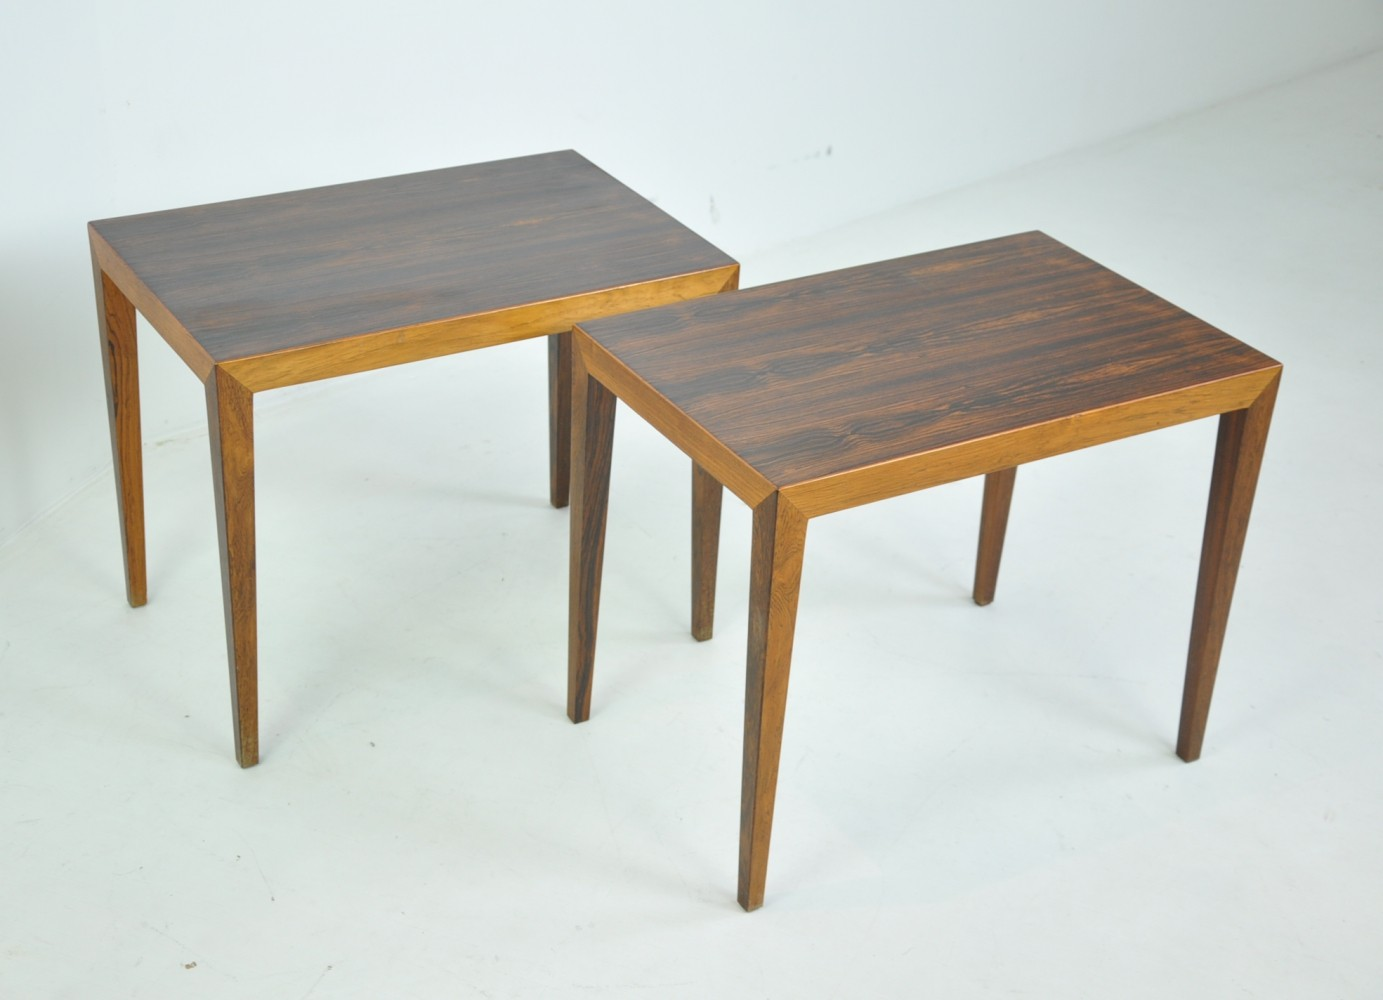 Pair of Rosewood Side Tables by Severin Hansen for Haslev, Denmark 1950s